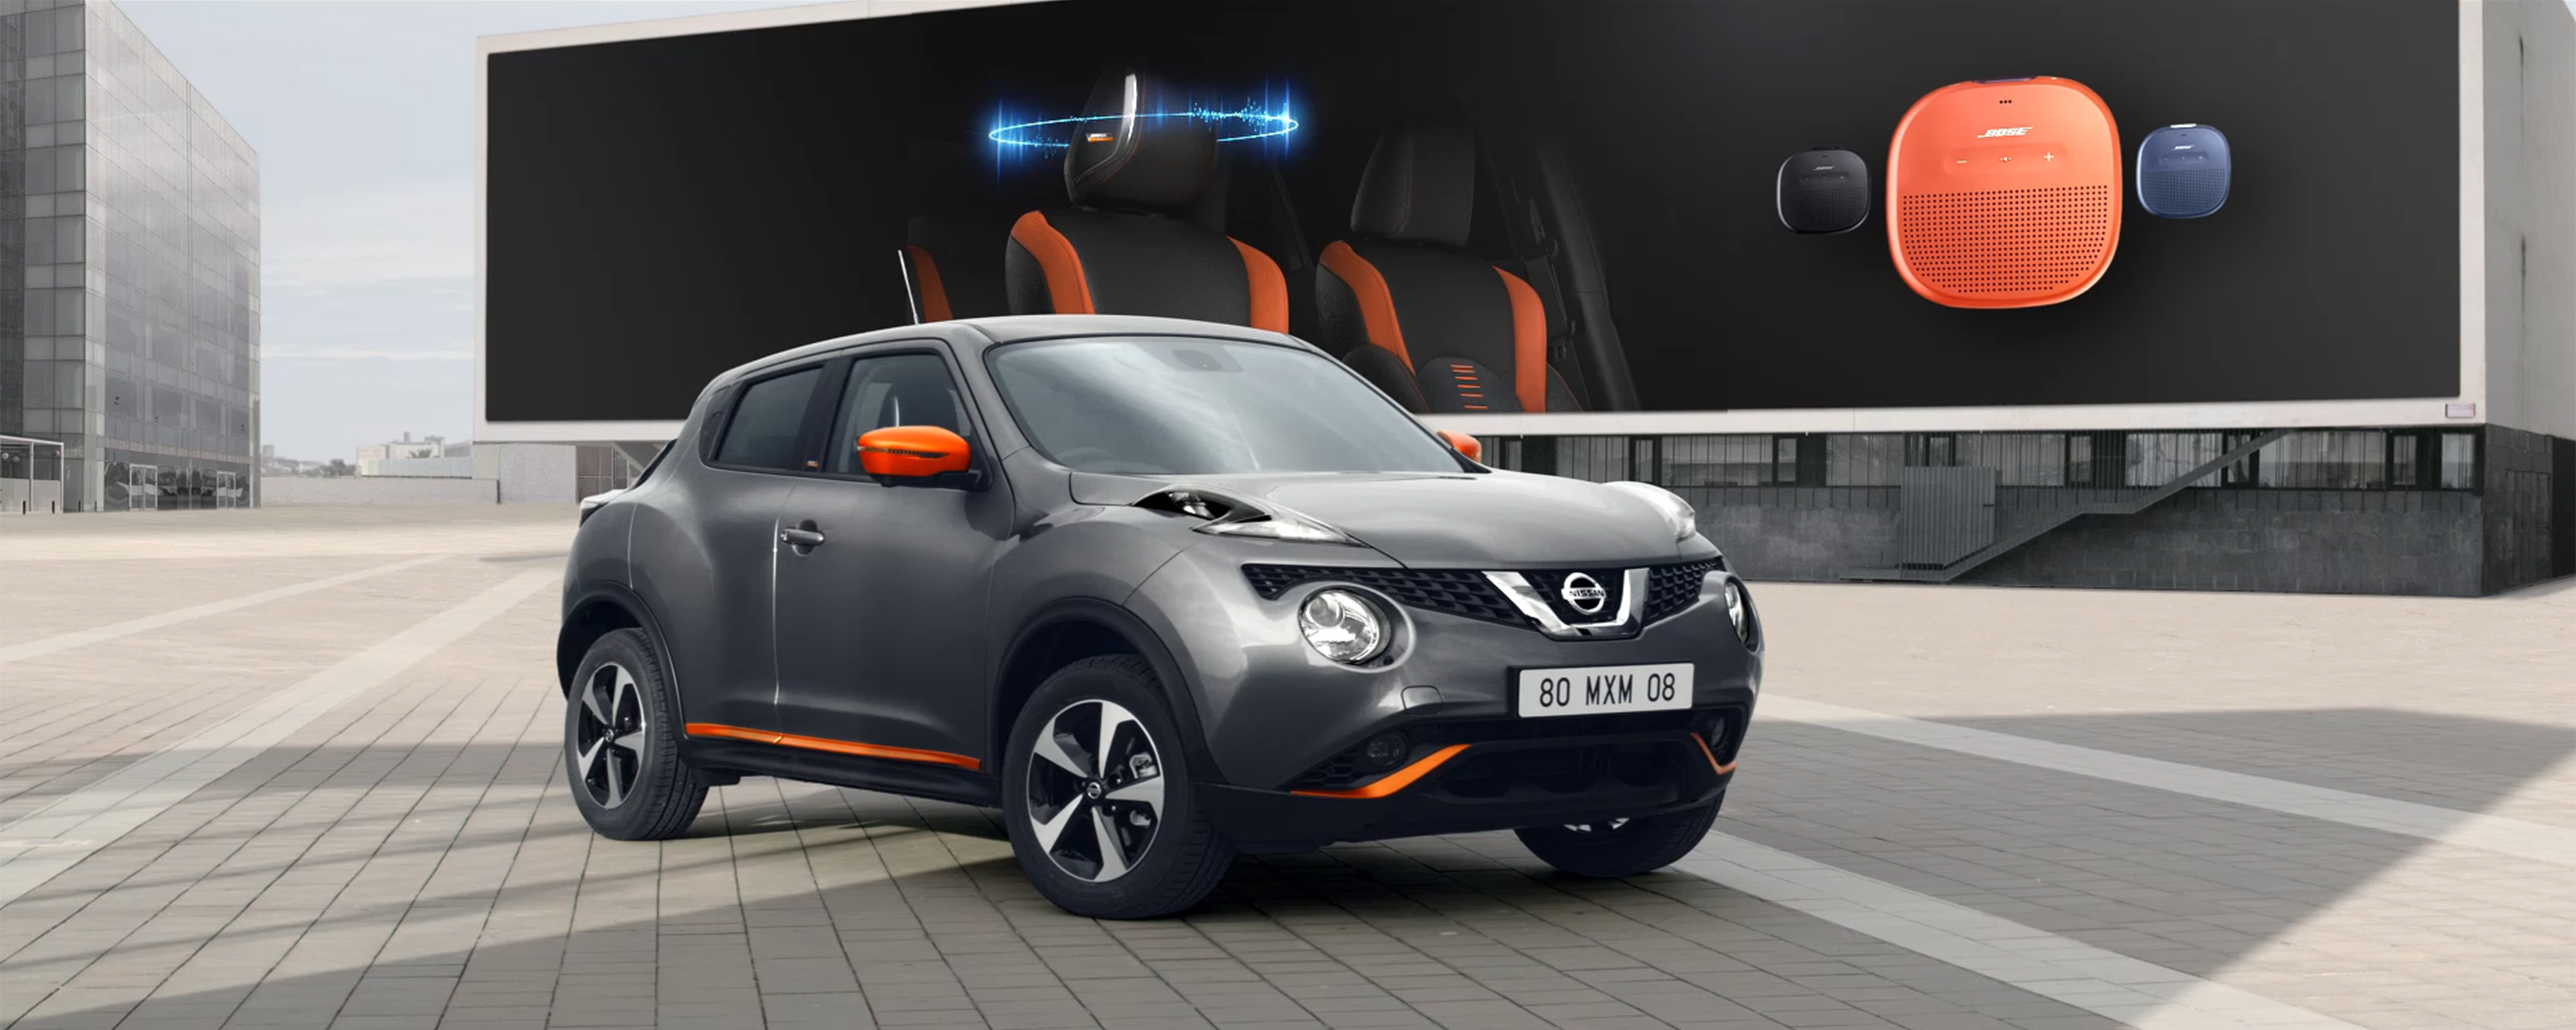 Nissan JUKE showing BOSE Sound System and BOSE Personal Portable Speaker in 3 colour options.